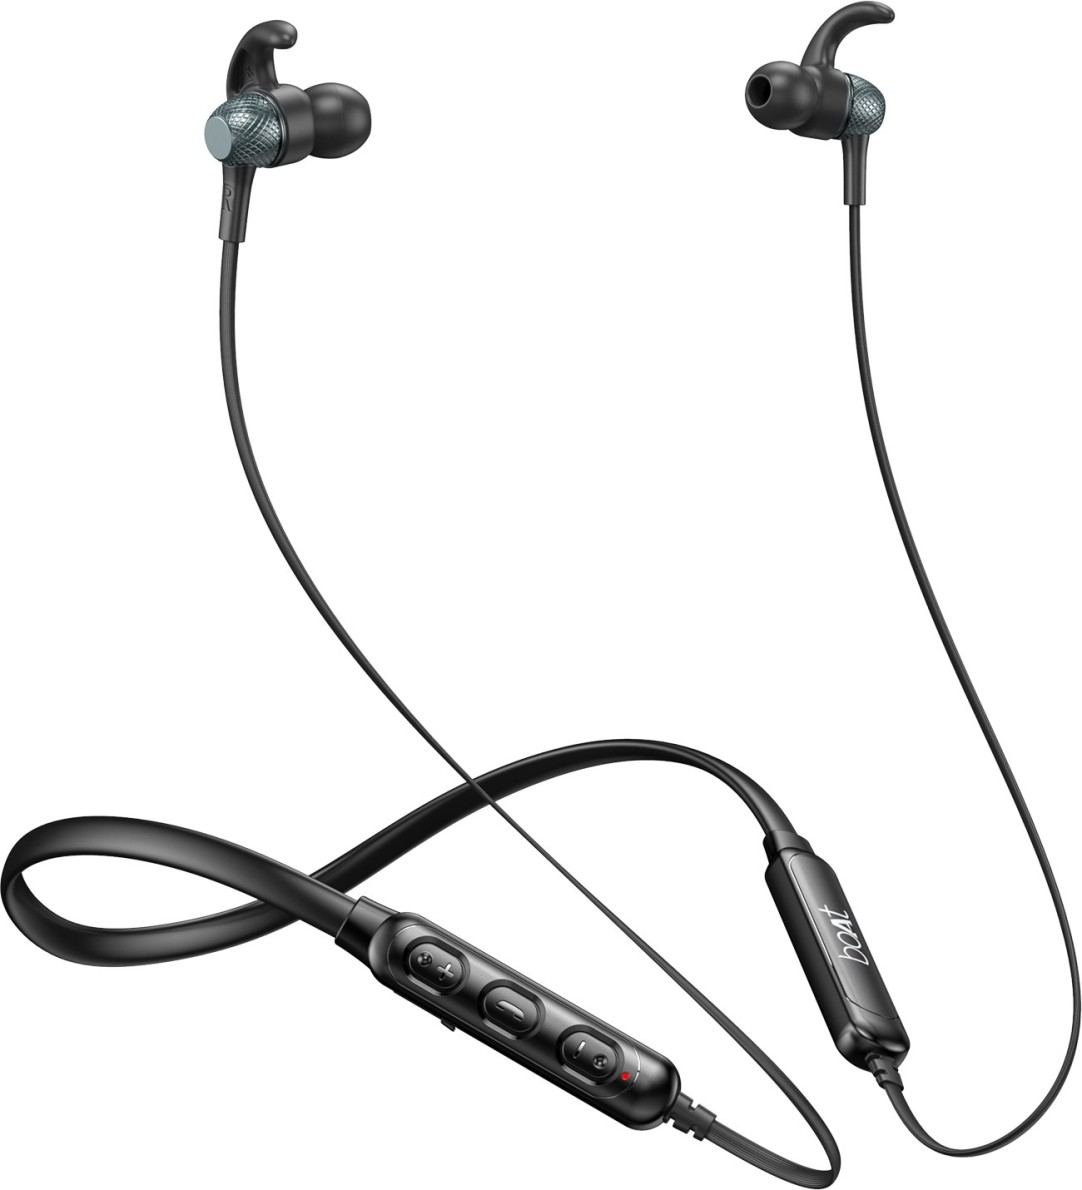 boAt 220 Wireless Bluetooth Headset with Mic  (Matte Black, In the Ear) at Rs 1399